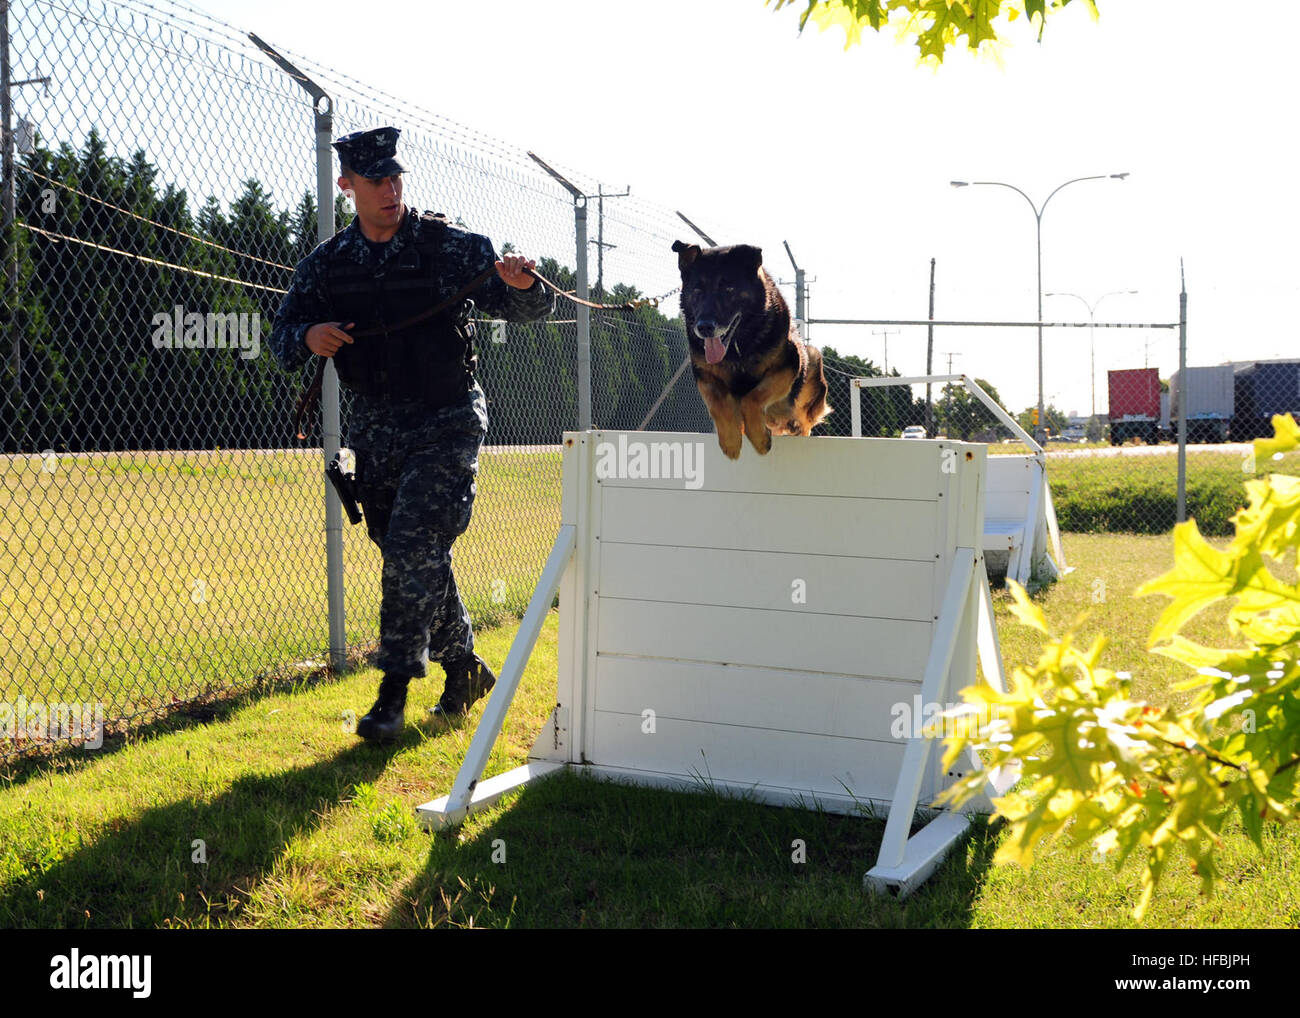 120626-N-YC505-074  NORFOLK, Va. (June 26, 2012) Master-at-Arms 2nd Class Shane McClennen, a dog handler assigned - Stock Image